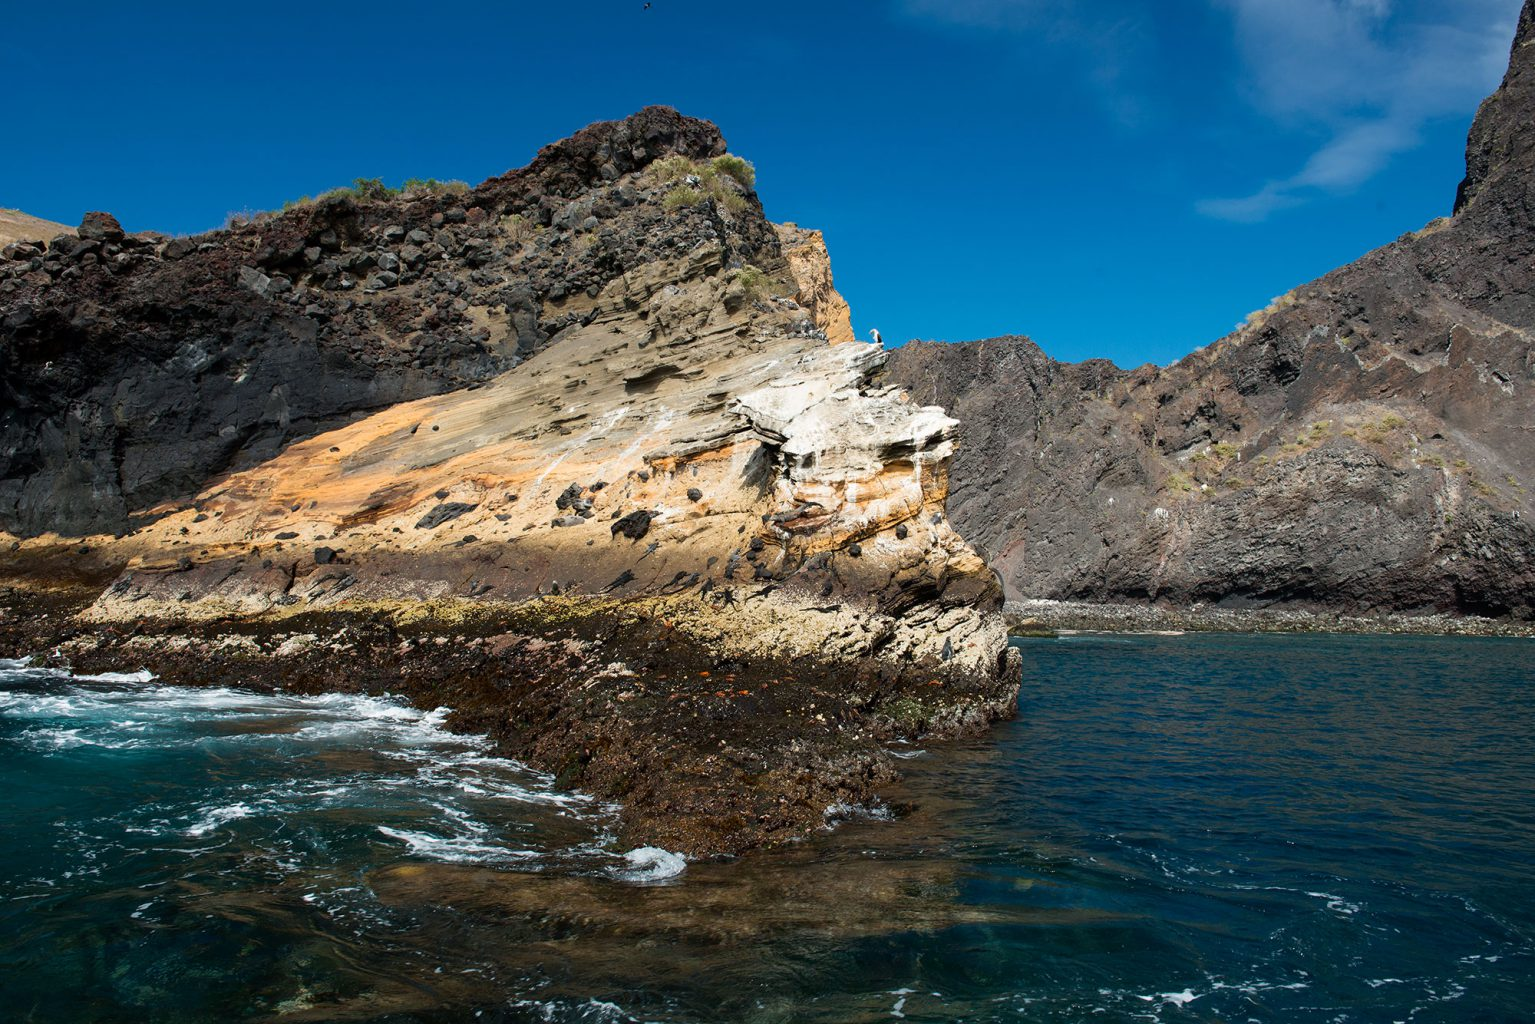 Galapagos Islands - Punta Vicente Roca